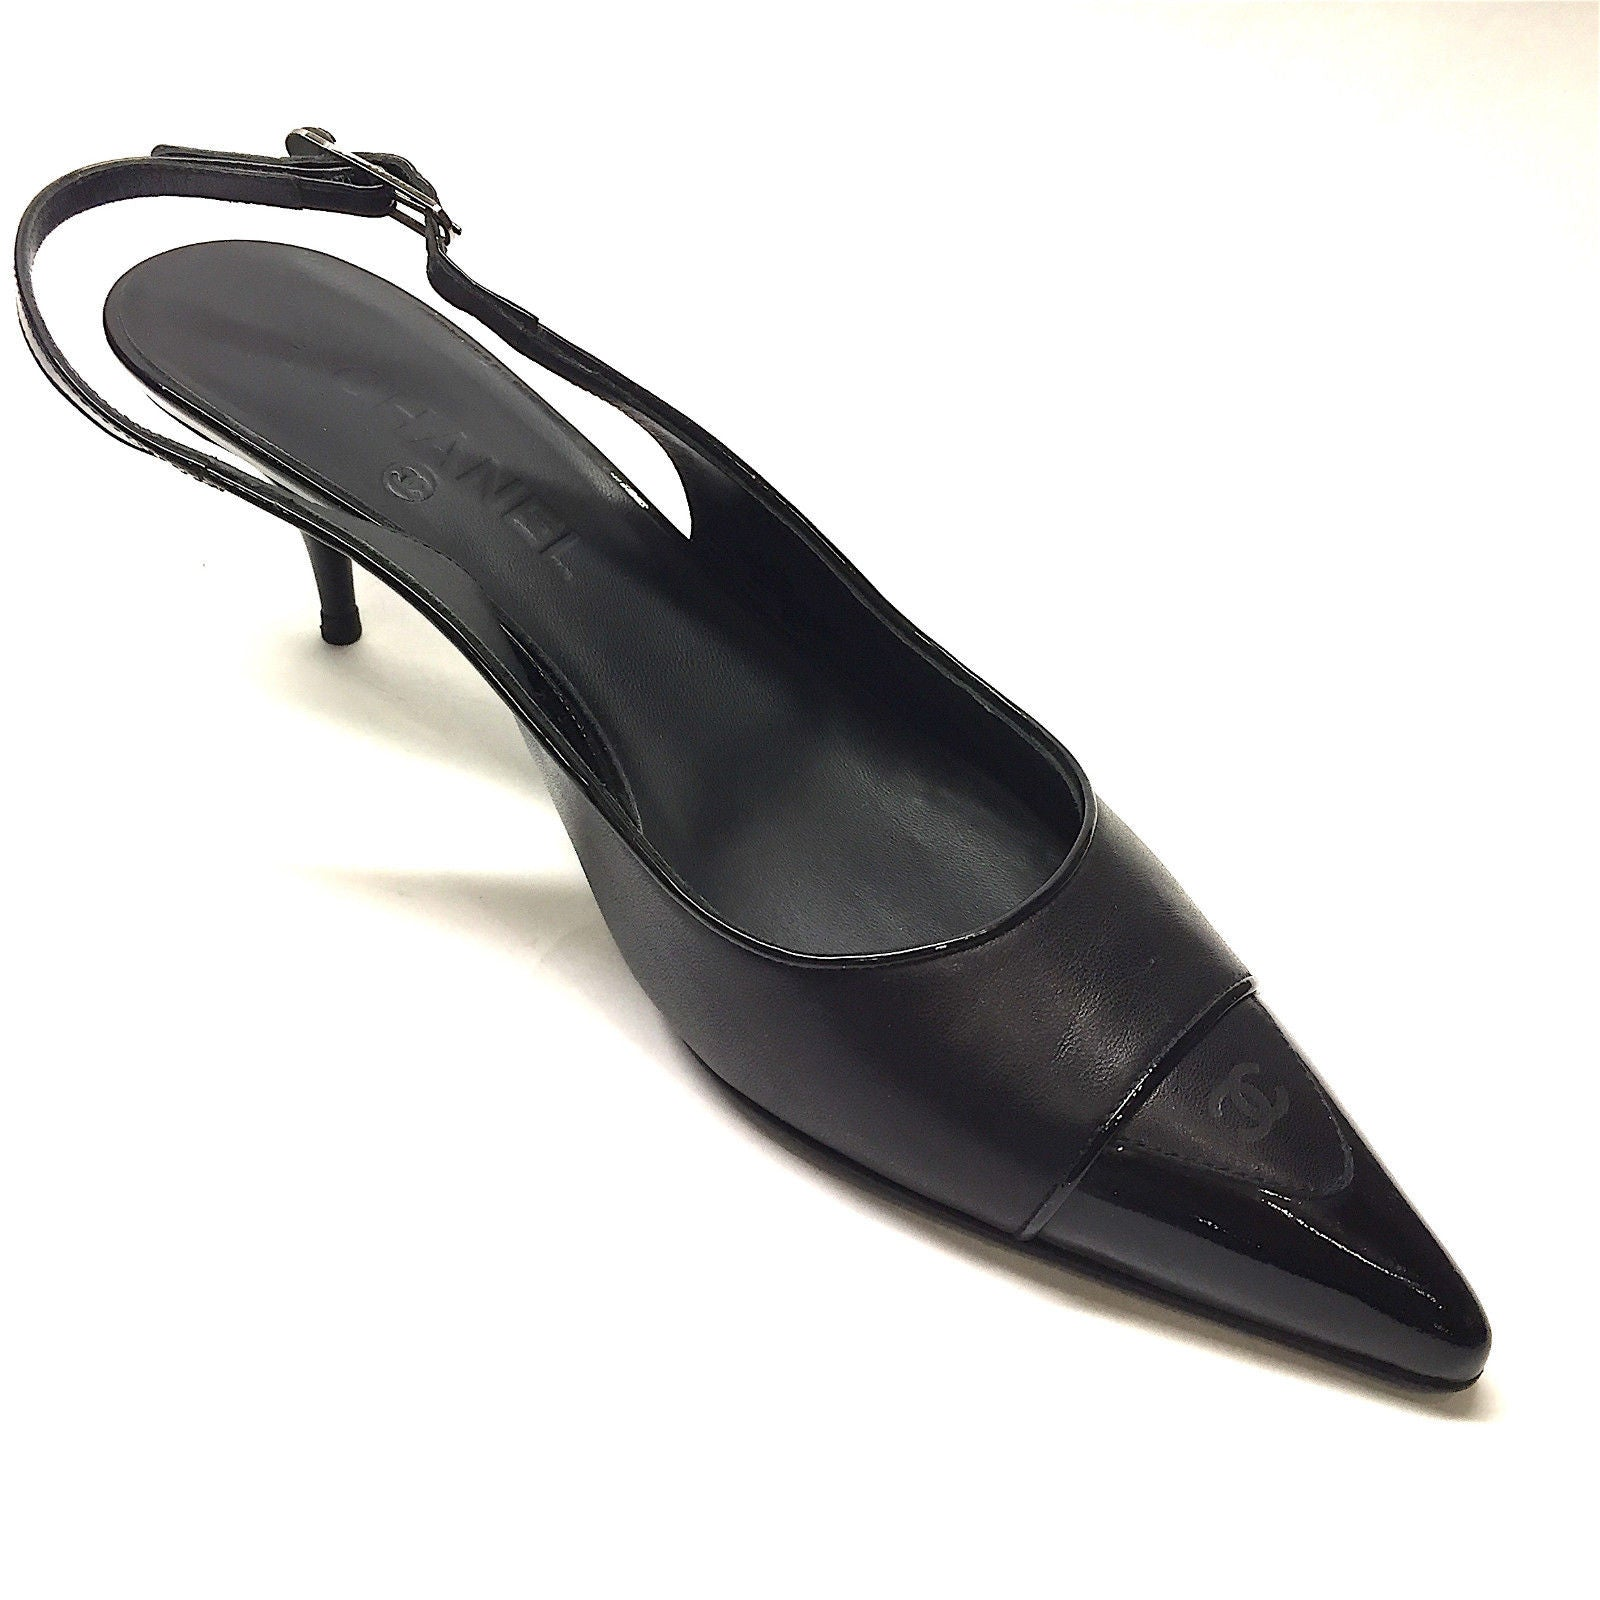 2129d4f6de9 CHANEL Black Leather Patent Logo Pointed Toe Low-Heel Slingback Pumps Shoes  Size: 39.5/9.5